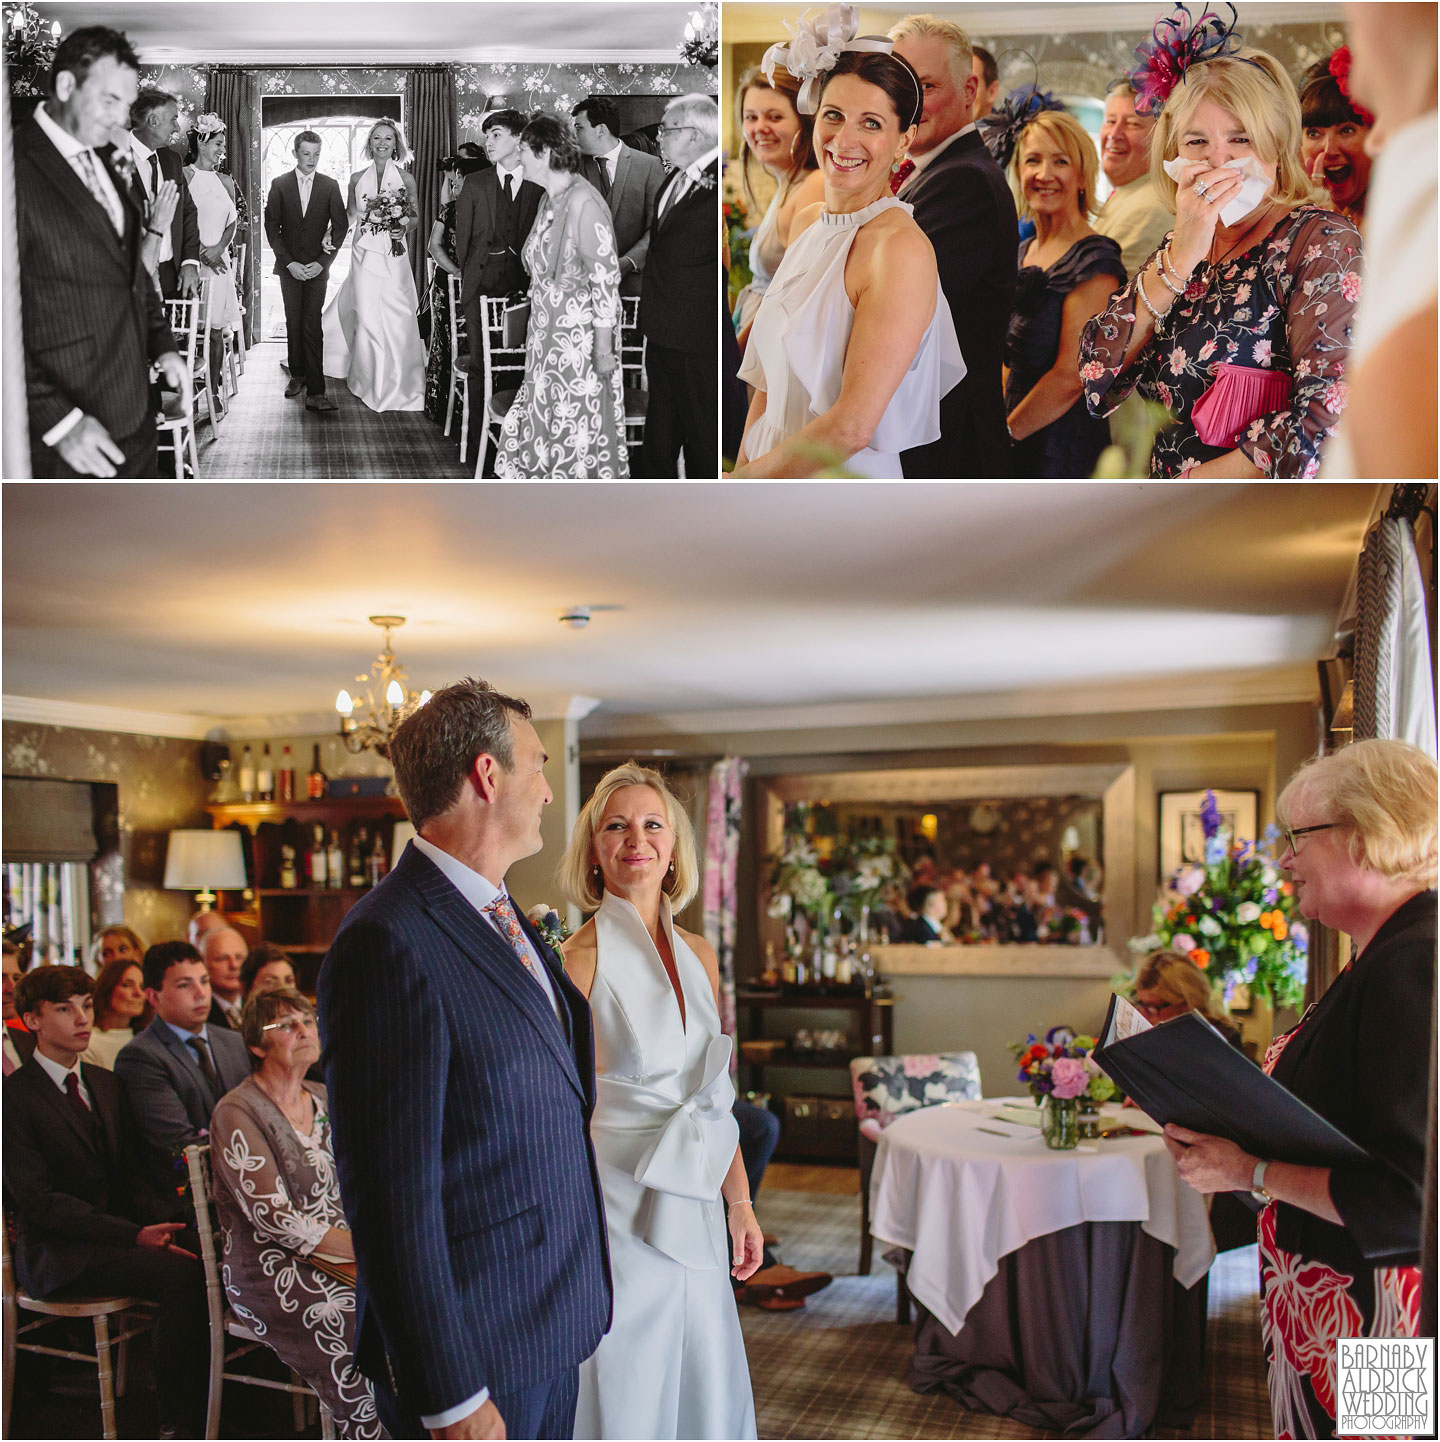 Wedding photos at The pheasant hotel in Harome in North Yorkshire